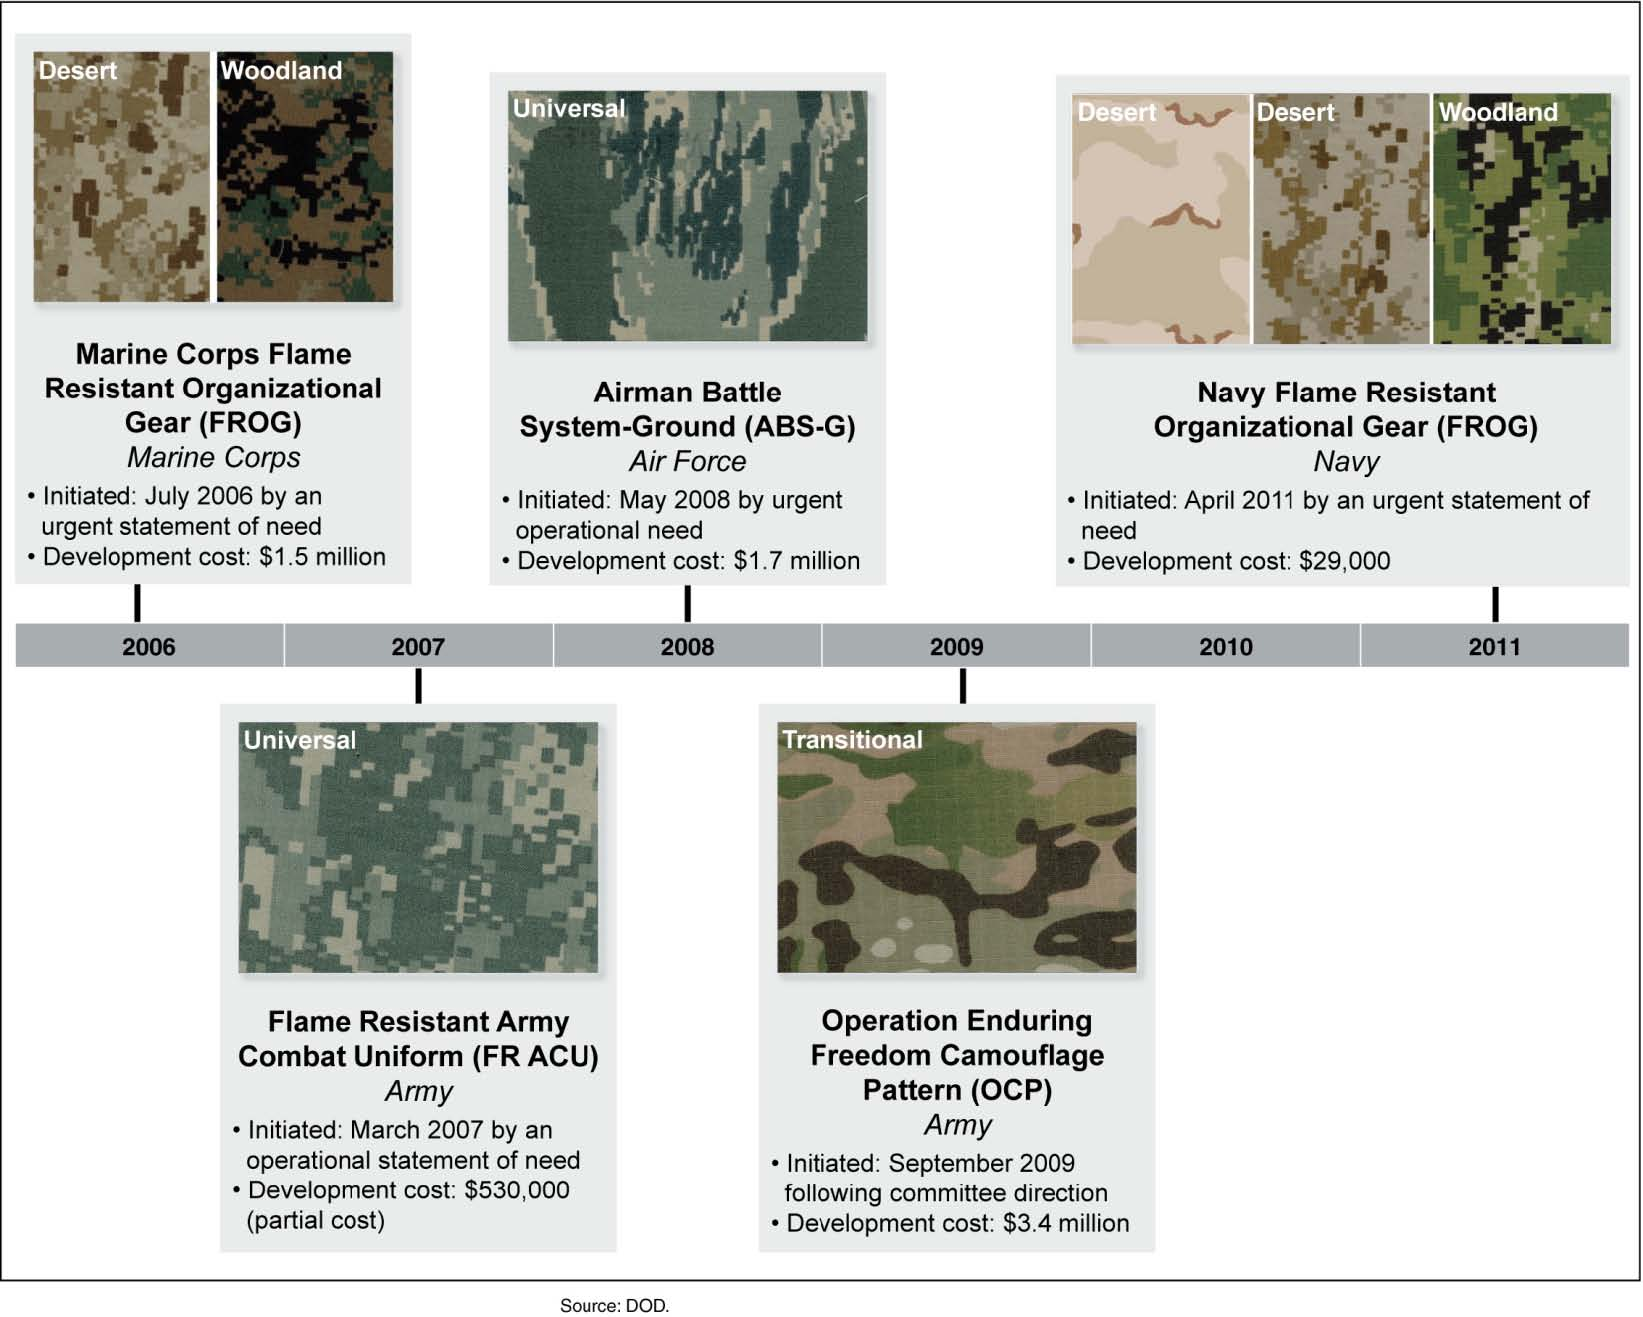 File:Figure 2- Services' Flame Resistant Uniforms, Dates of